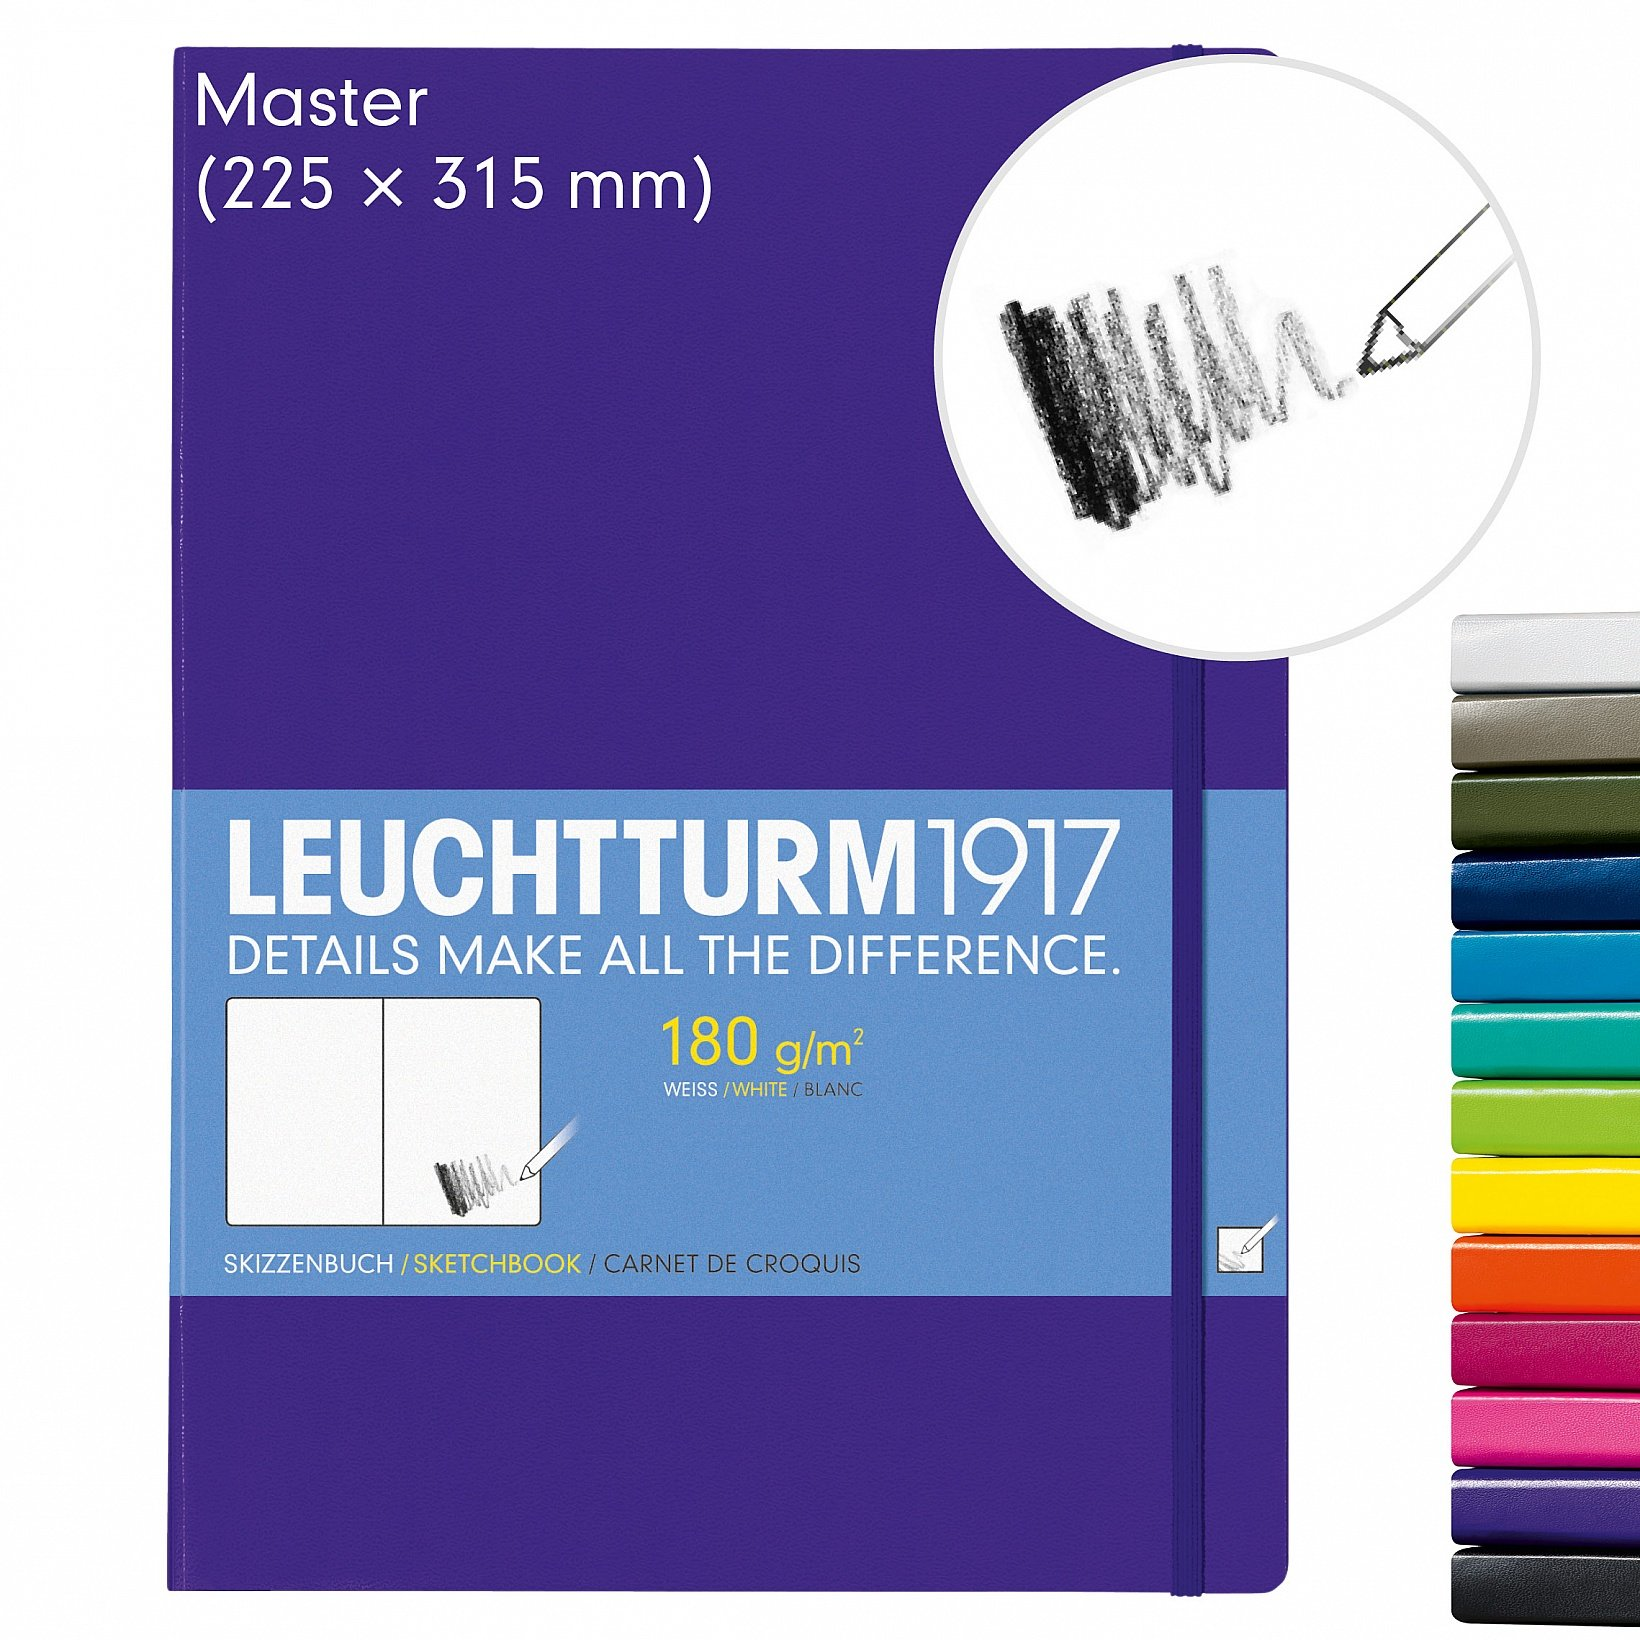 Leuchtturm1917 A4+ Master Hardcover Sketchbook, 8.85 X 12.5 inches, 96 Pages of 180g Brilliant White Plain Paper, Orange (345004) by LEUCHTTURM1917 (Image #2)